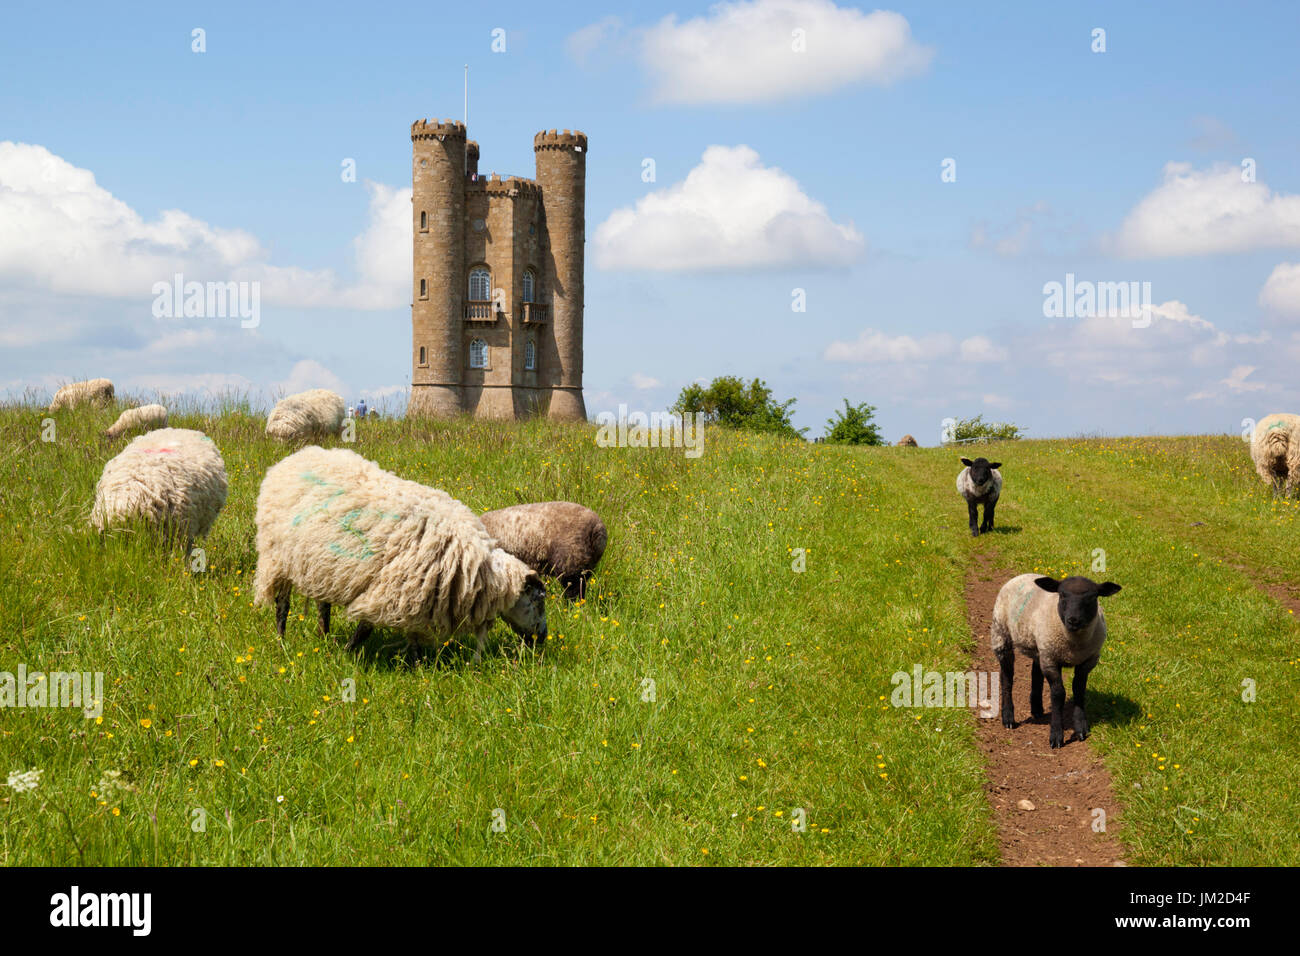 Broadway Tower et les moutons, Broadway, Cotswolds, Worcestershire, Angleterre, Royaume-Uni, Europe Photo Stock